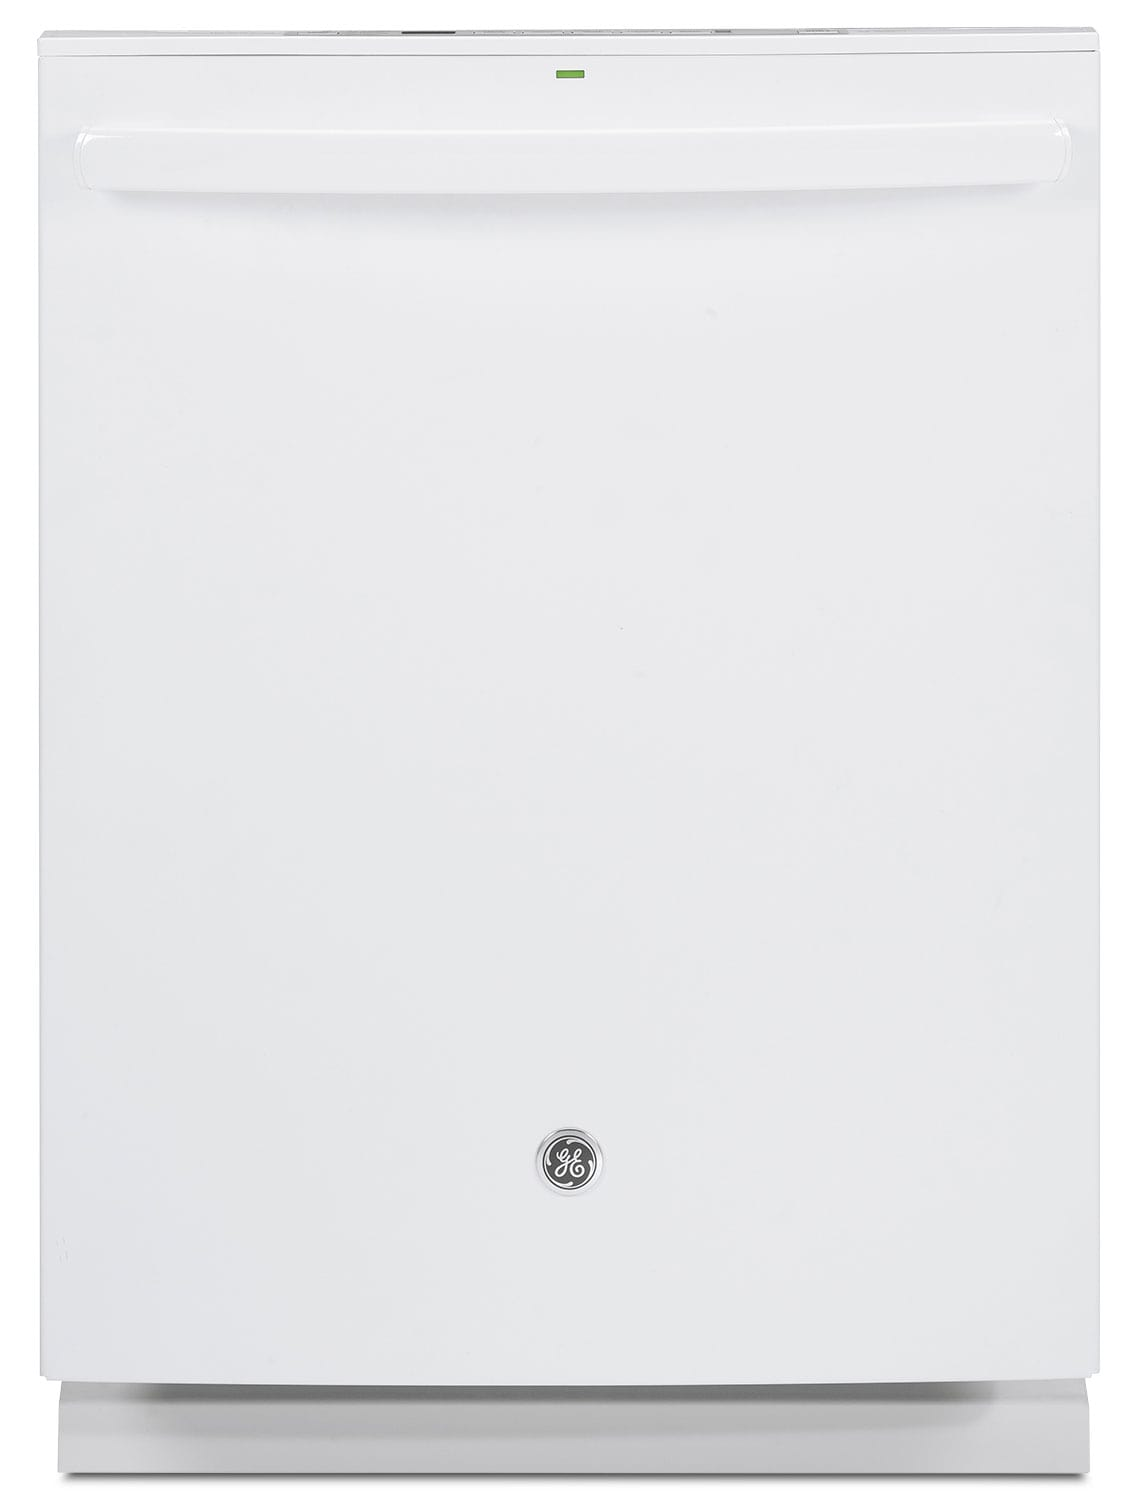 Clean-Up - GE Tall-Tub Built-In Dishwasher – GDT655SGJWW